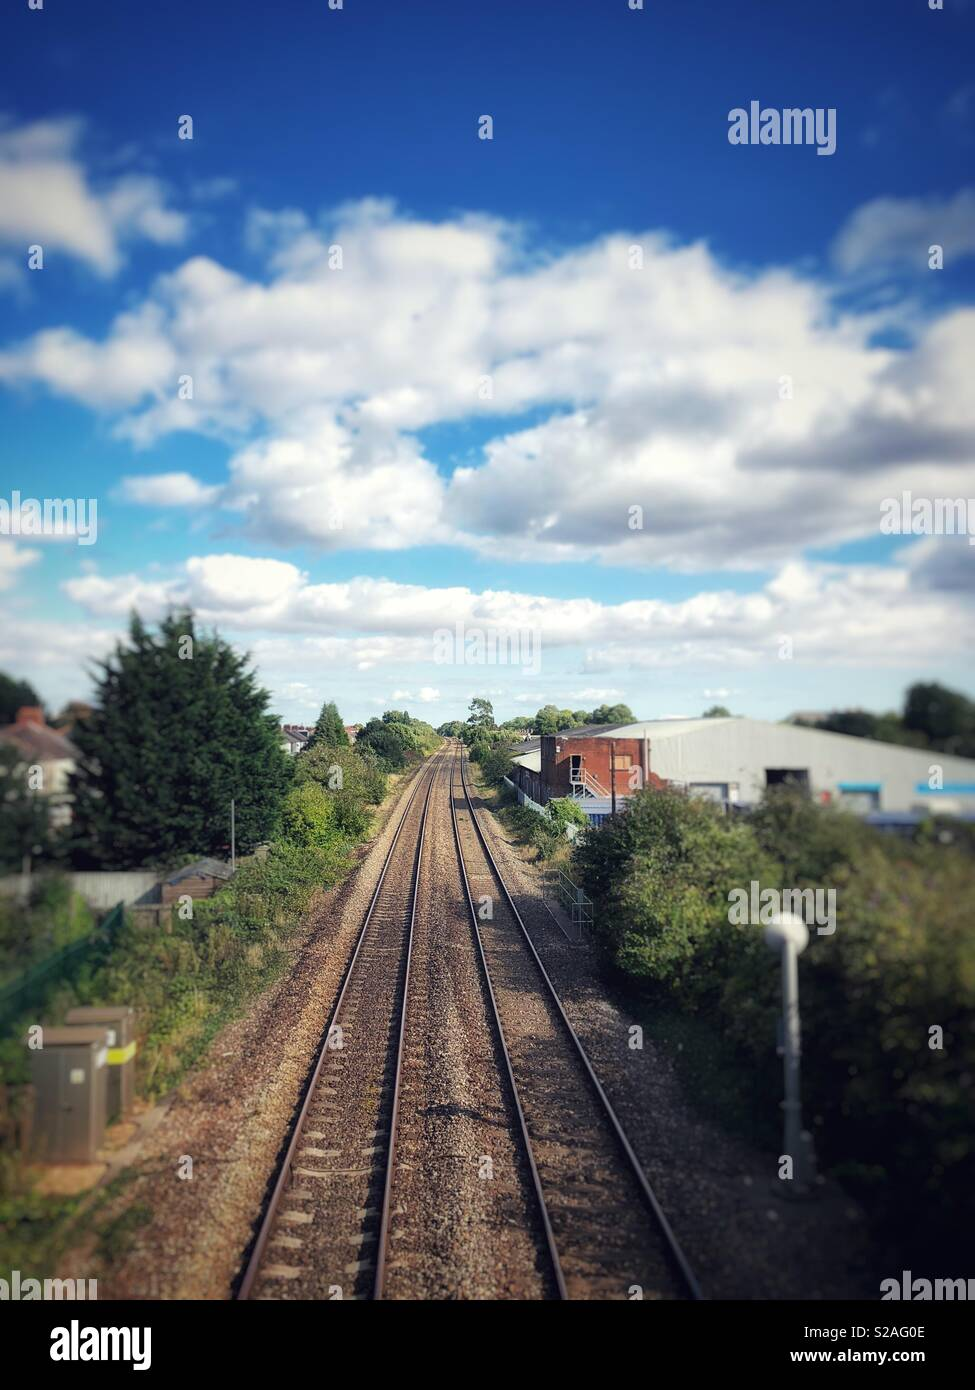 Train line vanishing into the distance, on a sunny September day, Cardiff. - Stock Image